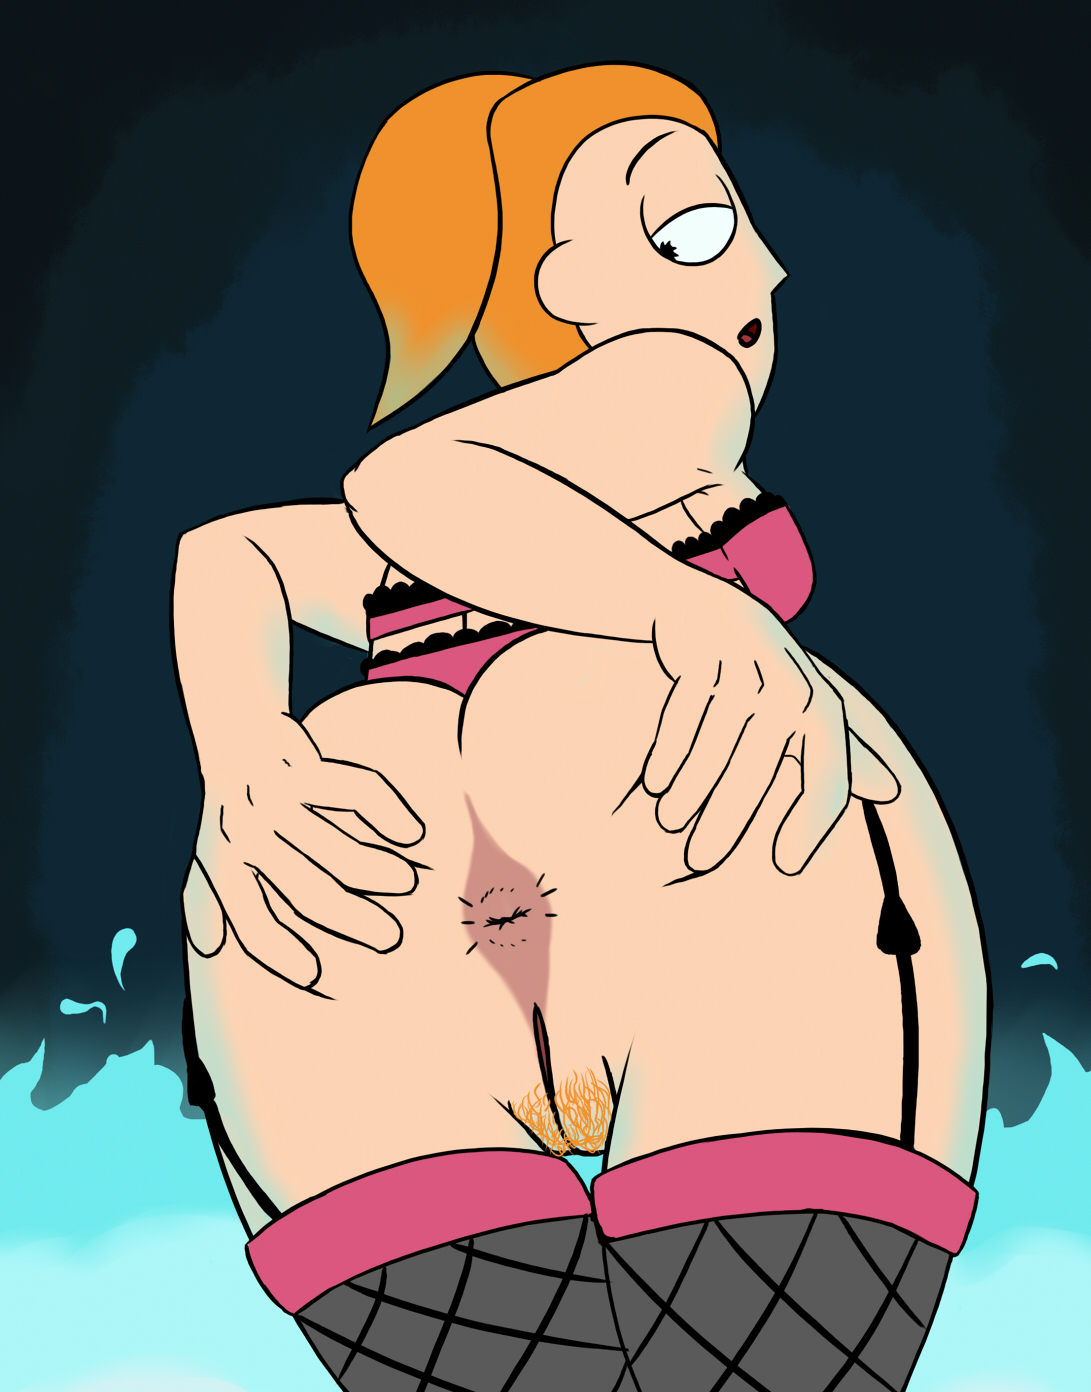 Summer from rick and morty nude